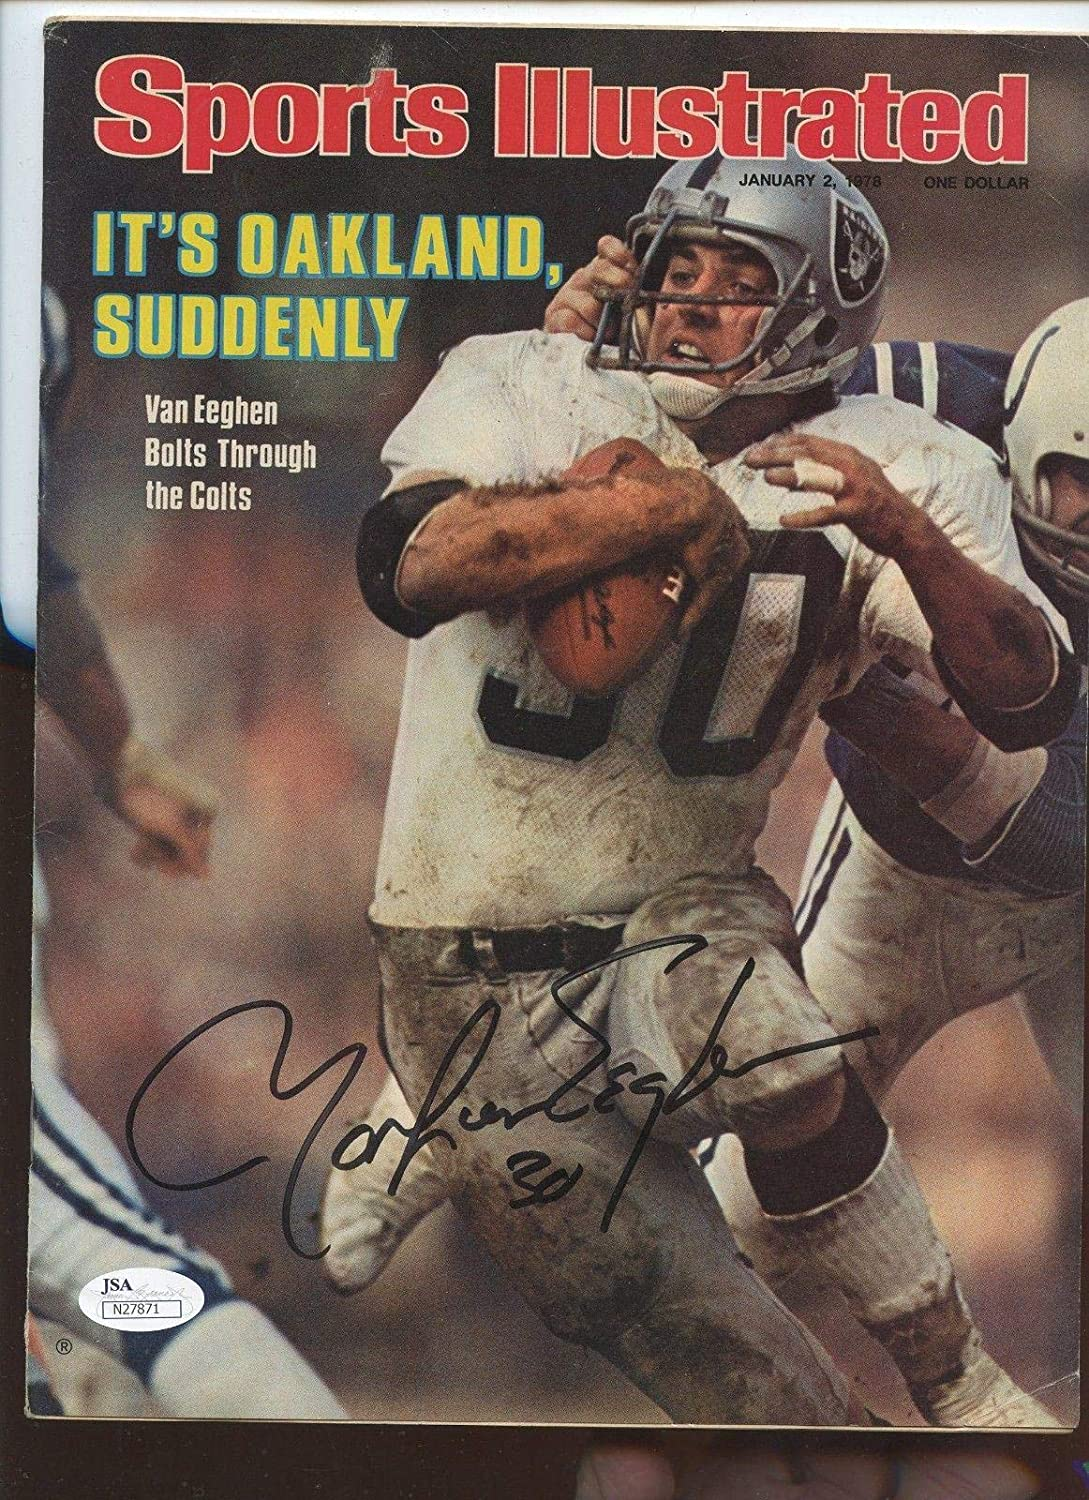 Jan 2 1978 Sports Illustrated No Mailing Label Mark Van Eeghen Autographed JSA - Autographed NFL Magazines